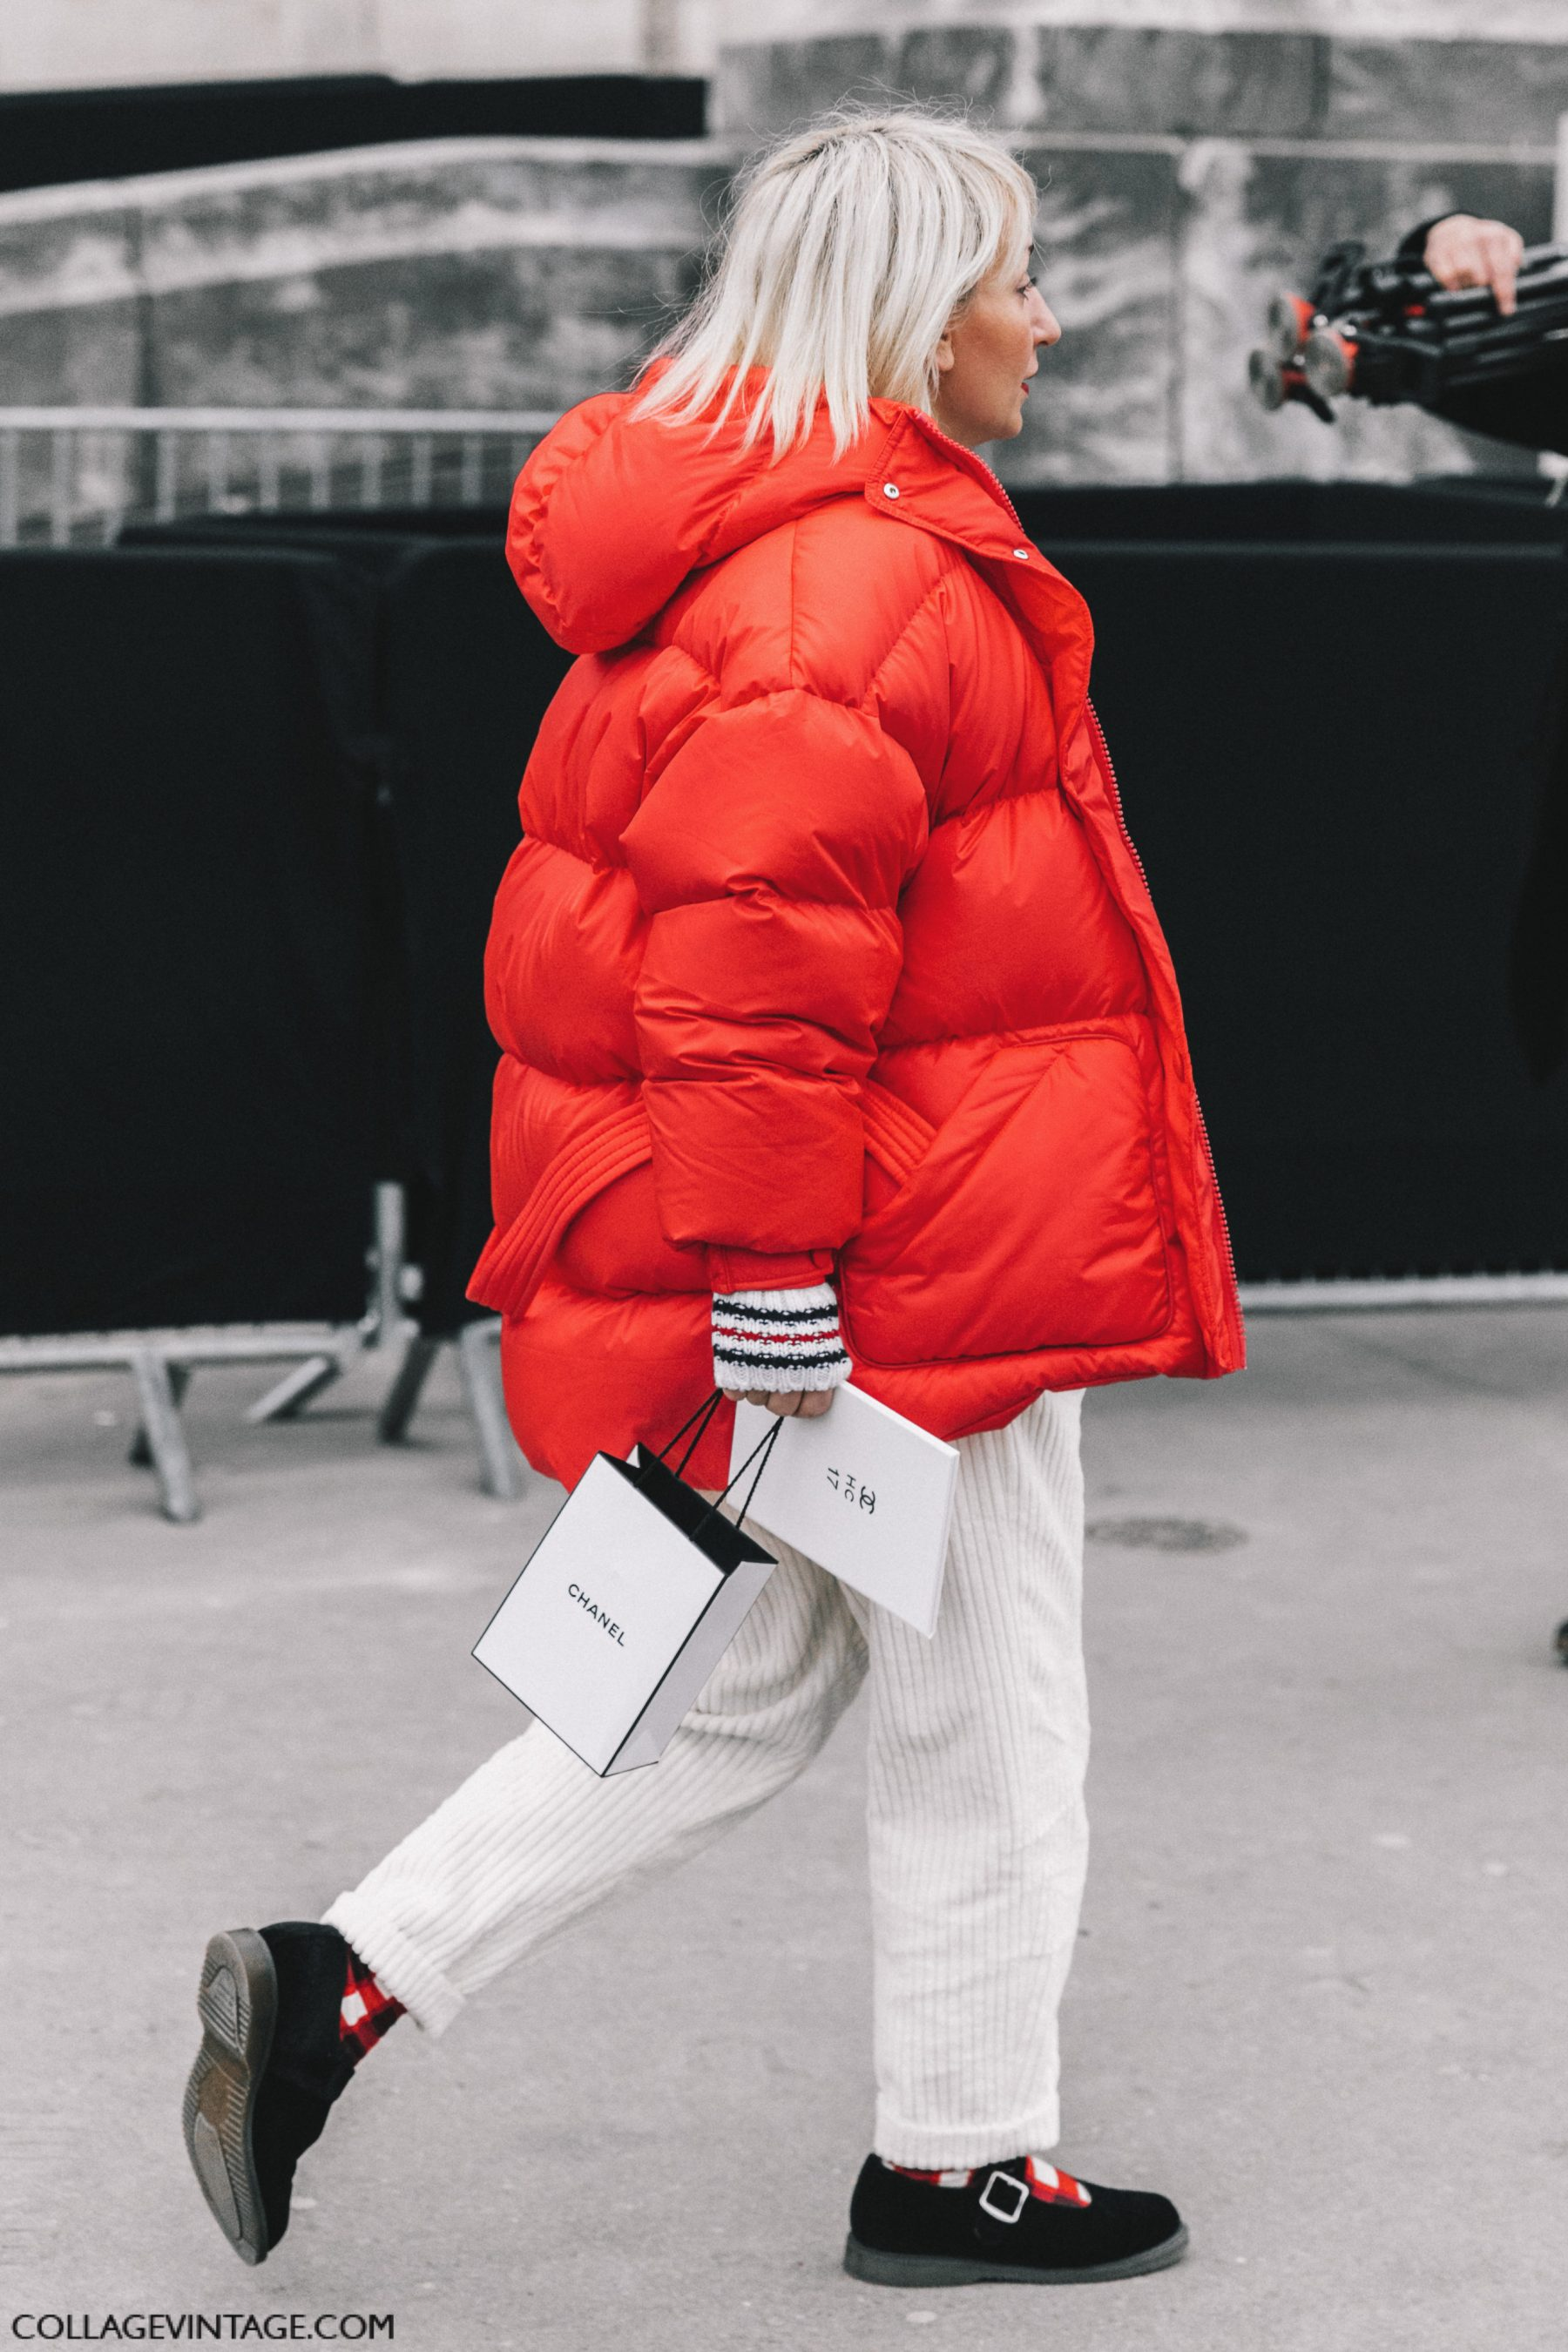 Couture_Paris_Fashion_Week-PFW-Street_Style-Chanel-Vetements-Outfit-Collage_Vintage-3-1800x2700